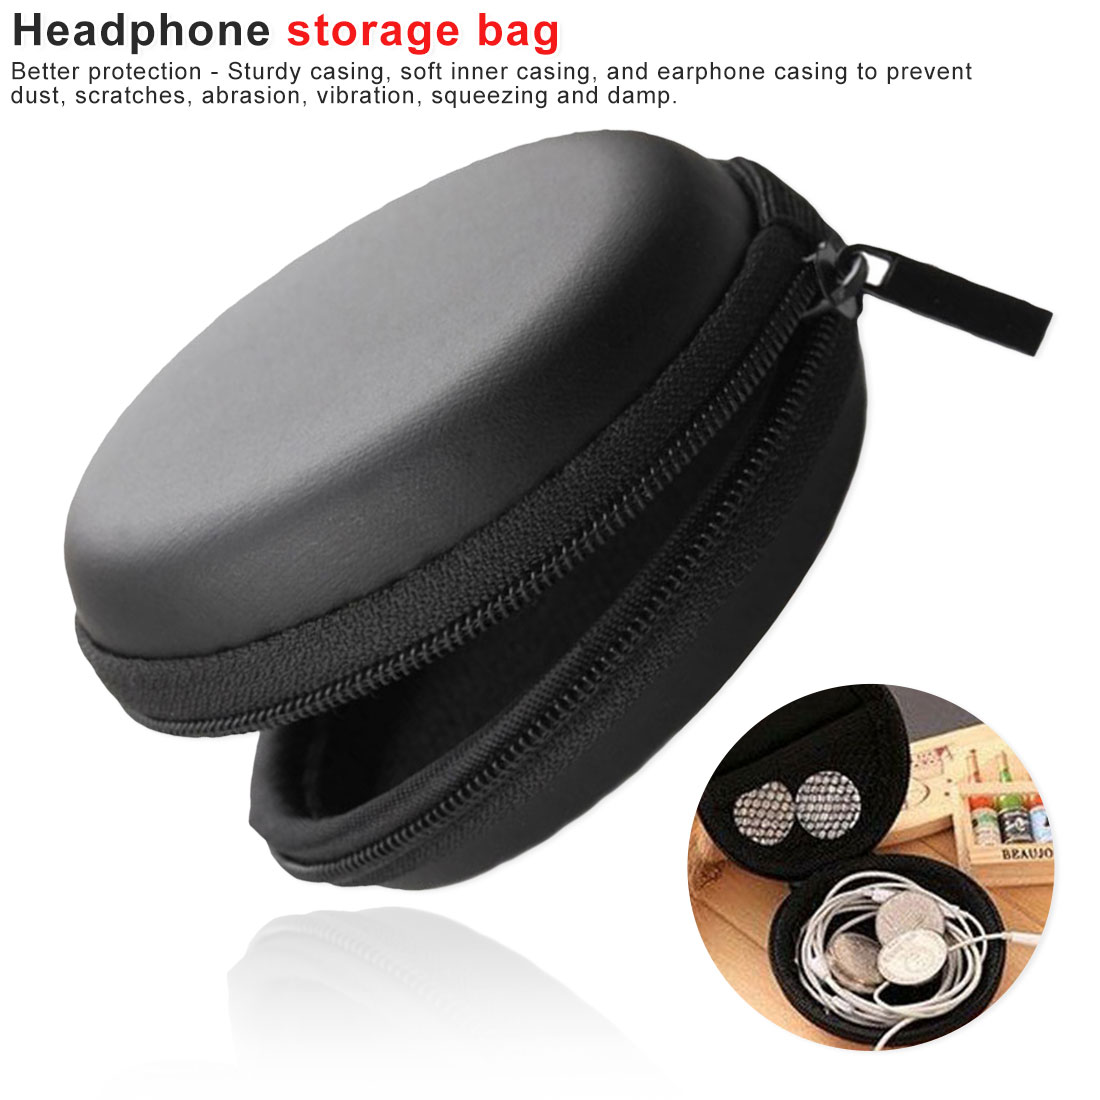 1Pc SD Portable Mini Round Carrying Hard Hold Case Storage for Earphone Earbuds Suppion earphone case small travel